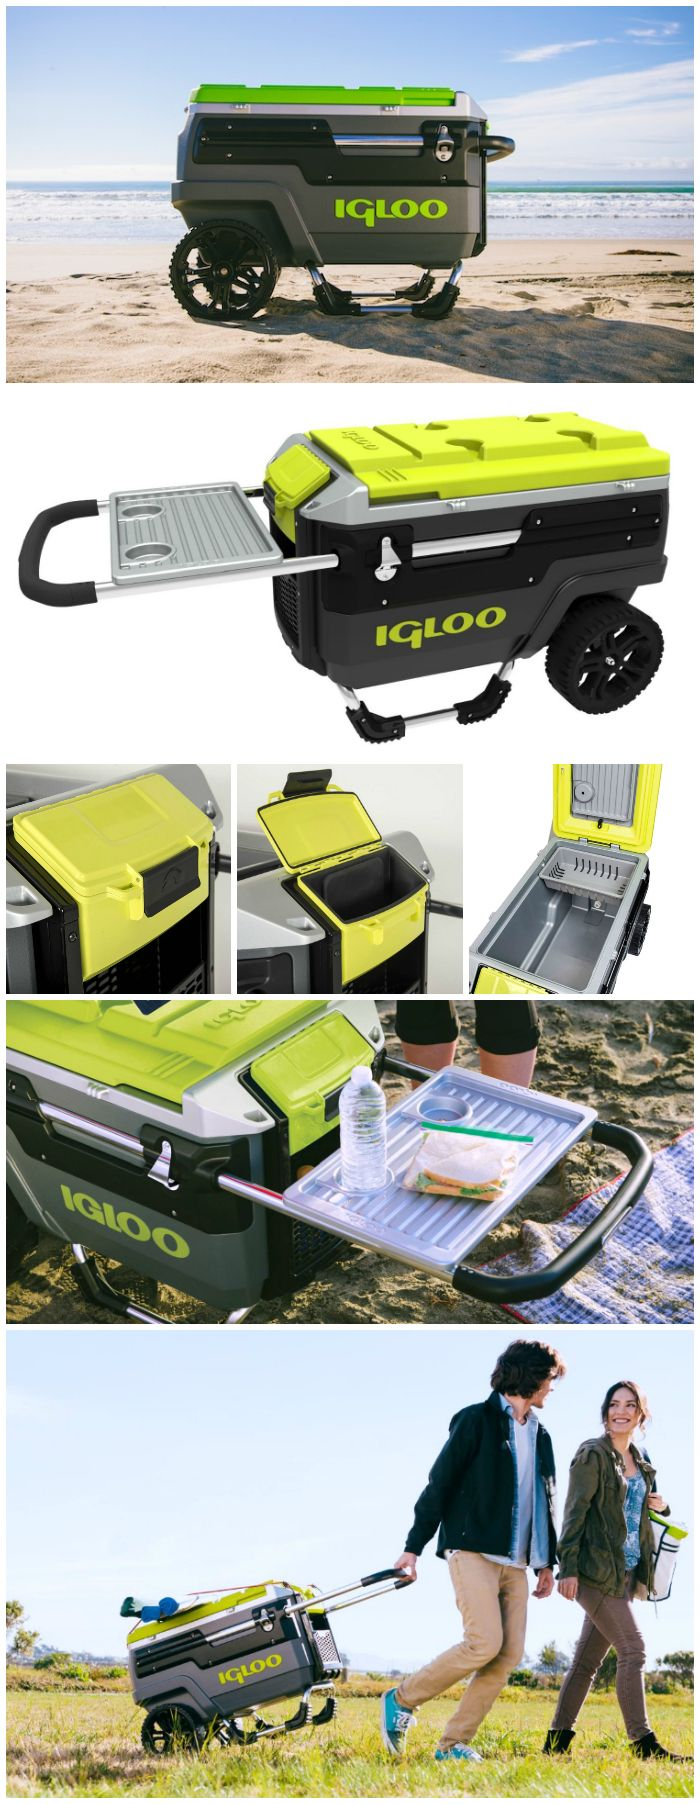 Party anywhere you want with the Igloo Trailmate all-terrain cooler, featuring the kind of built-tough mobility that can traverse in all kinds of conditions.